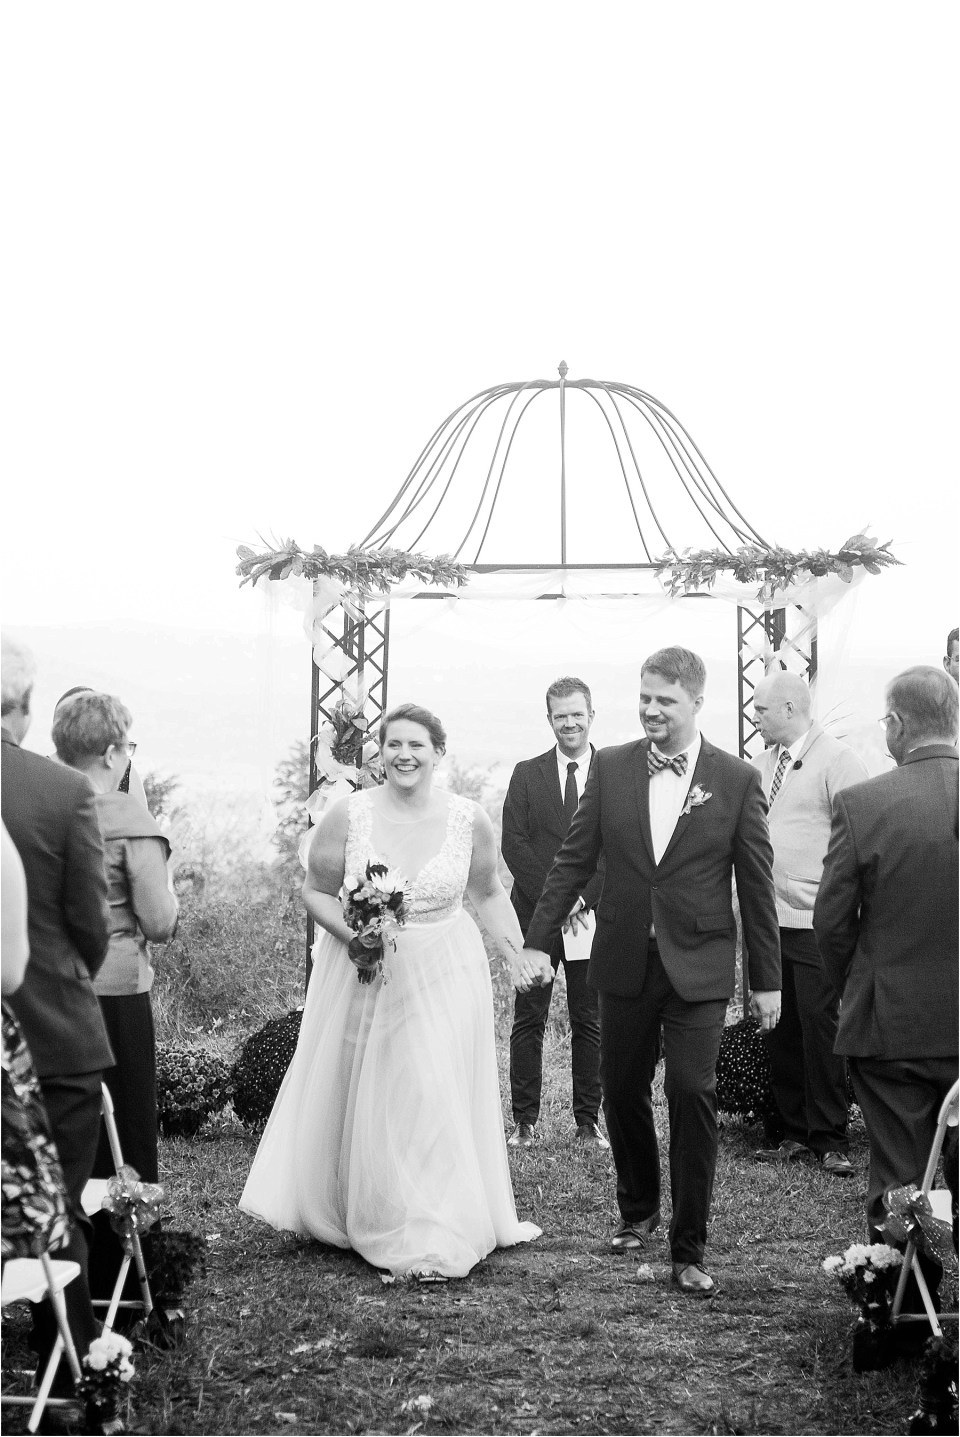 vintage-wedding-in-lydia-mountains-cabins-ana-isabel-photography-141